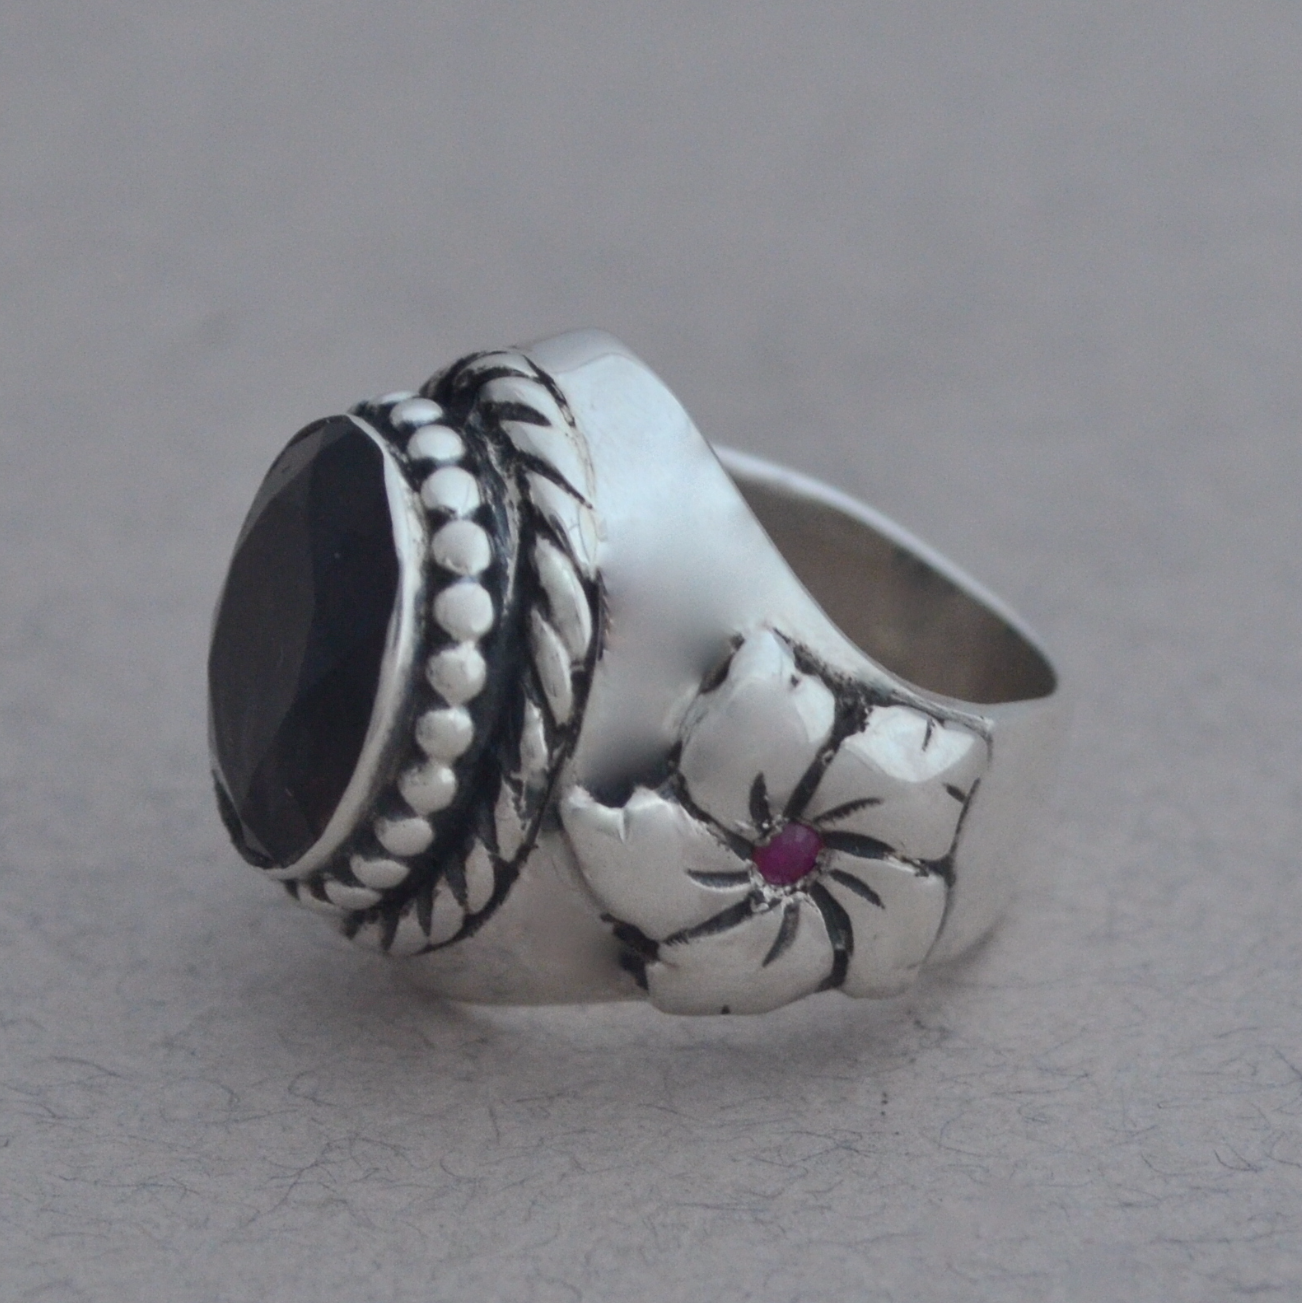 Cherry Blossom ring The Wildness Jewellery